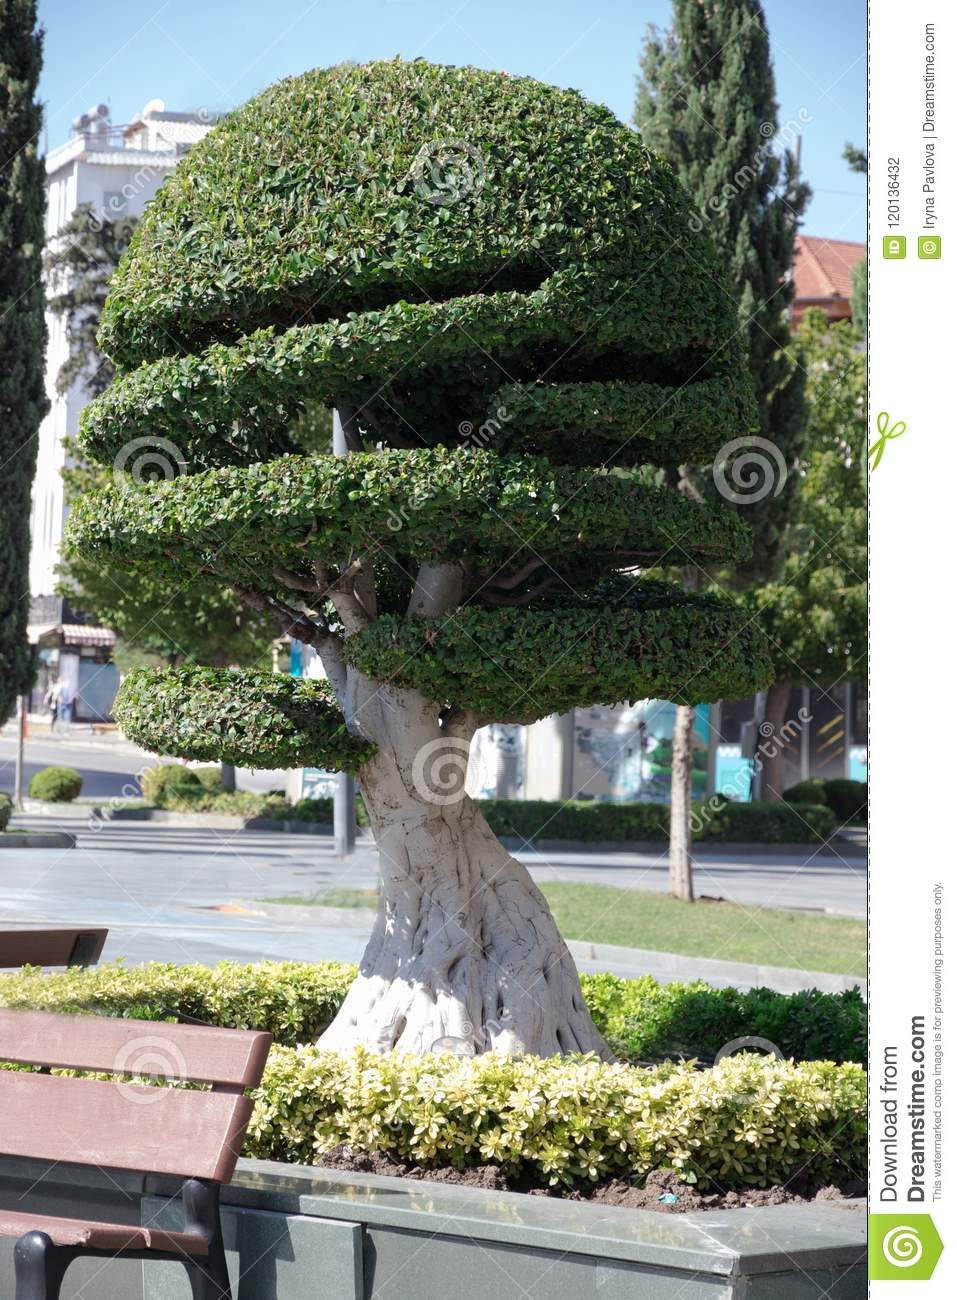 Topiary Tree Beautifully Cut Cypress Stock Photo Image Of Beautiful Garden 120136432